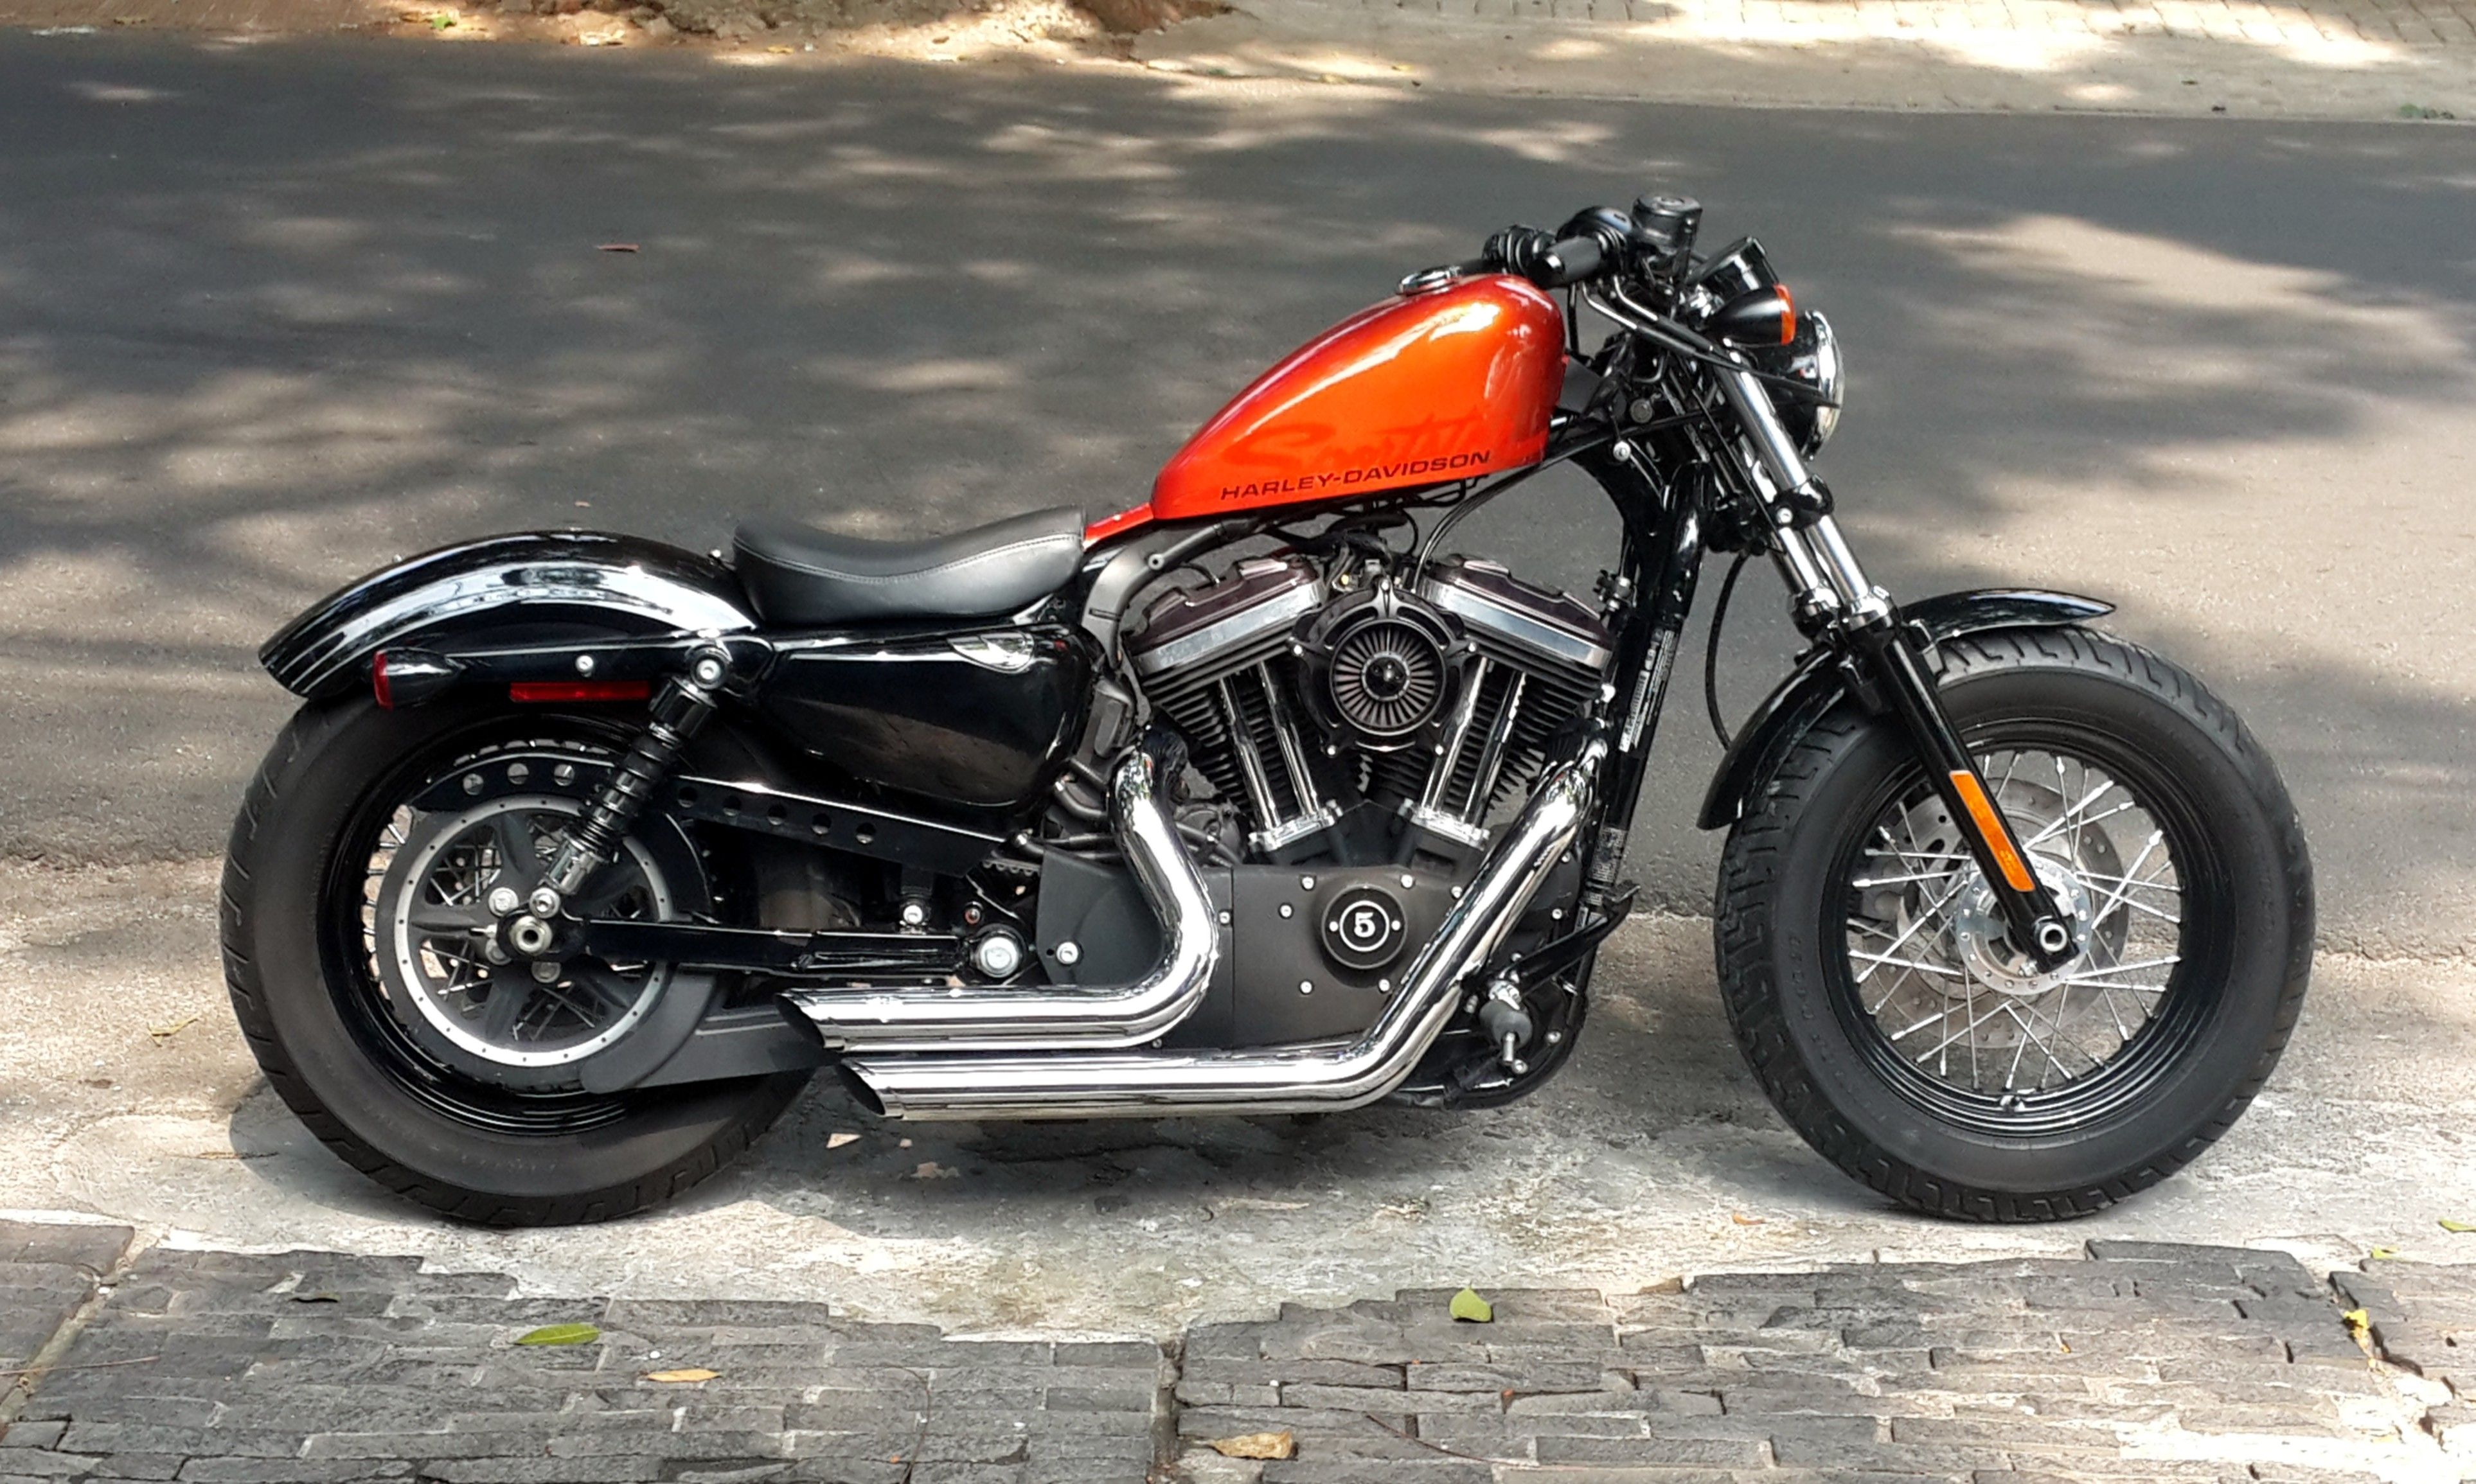 My 2011 Hd Sportster Forty Eight Orange Candy Tank With 2 Uplift Kit V H Short Stock Chrome Exhaust Screaming Eagle Sp Hd Sportster Candy Tank Sportster